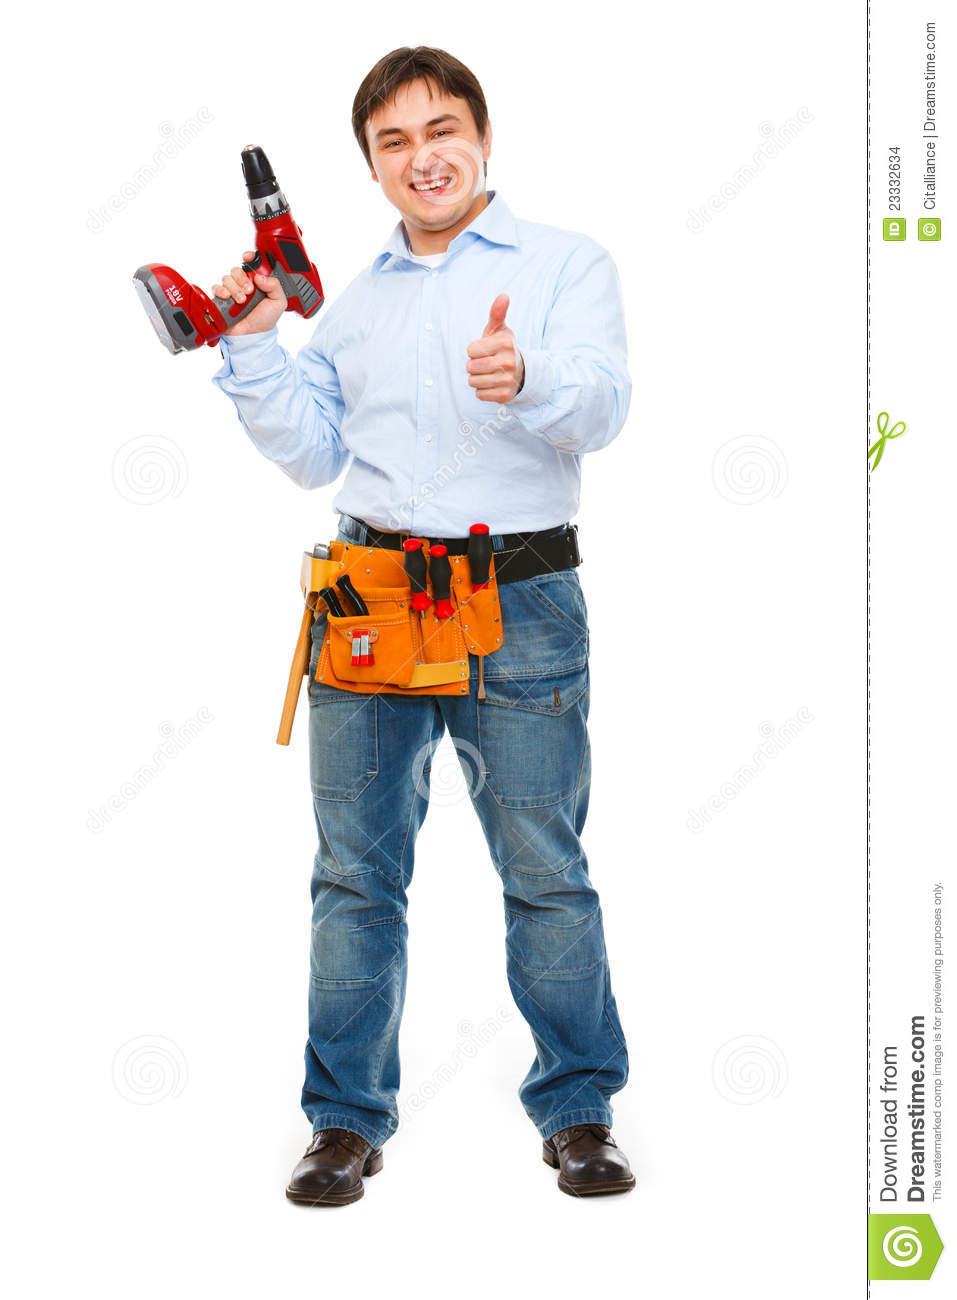 Construction Worker With Drill Showing Thumbs Up Stock ...  Construction Wo...